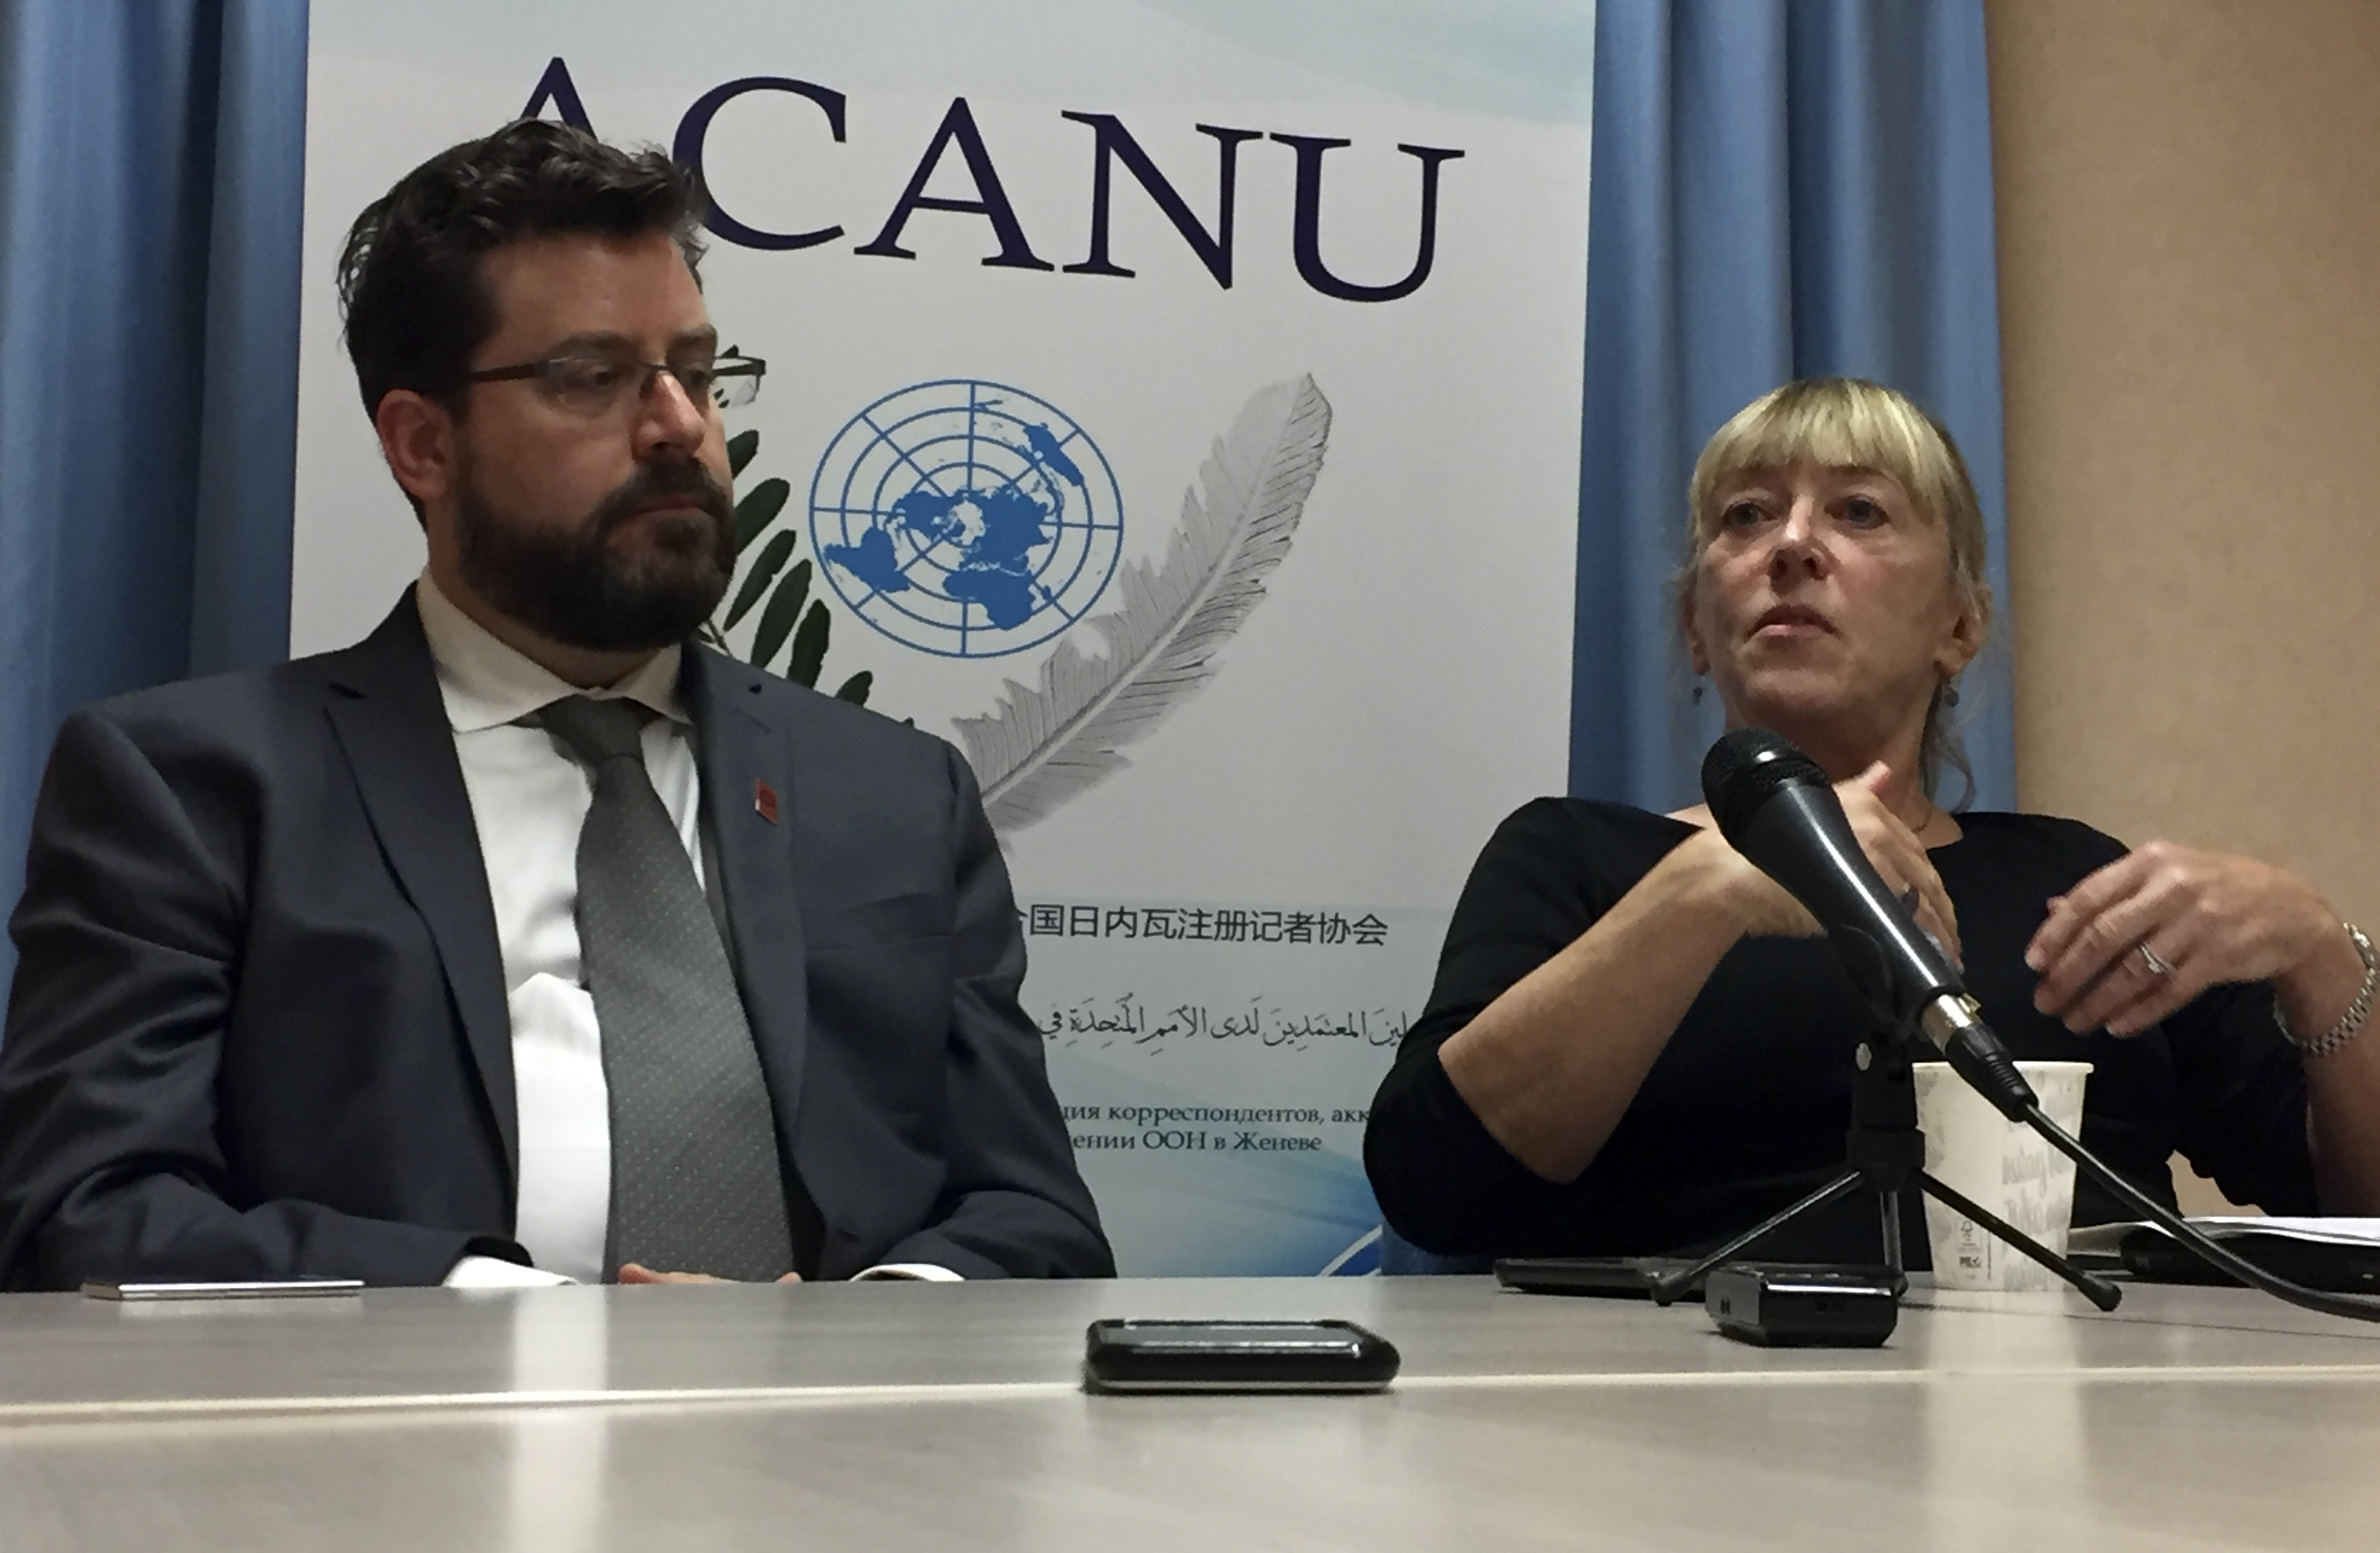 Peter Asaro, left, of the International Committee for Robot Arms Control, and Jody Williams of the Nobel Women's Initiative speak to reporters at a news conference in Geneva, Switzerland, Aug. 27, 2018.